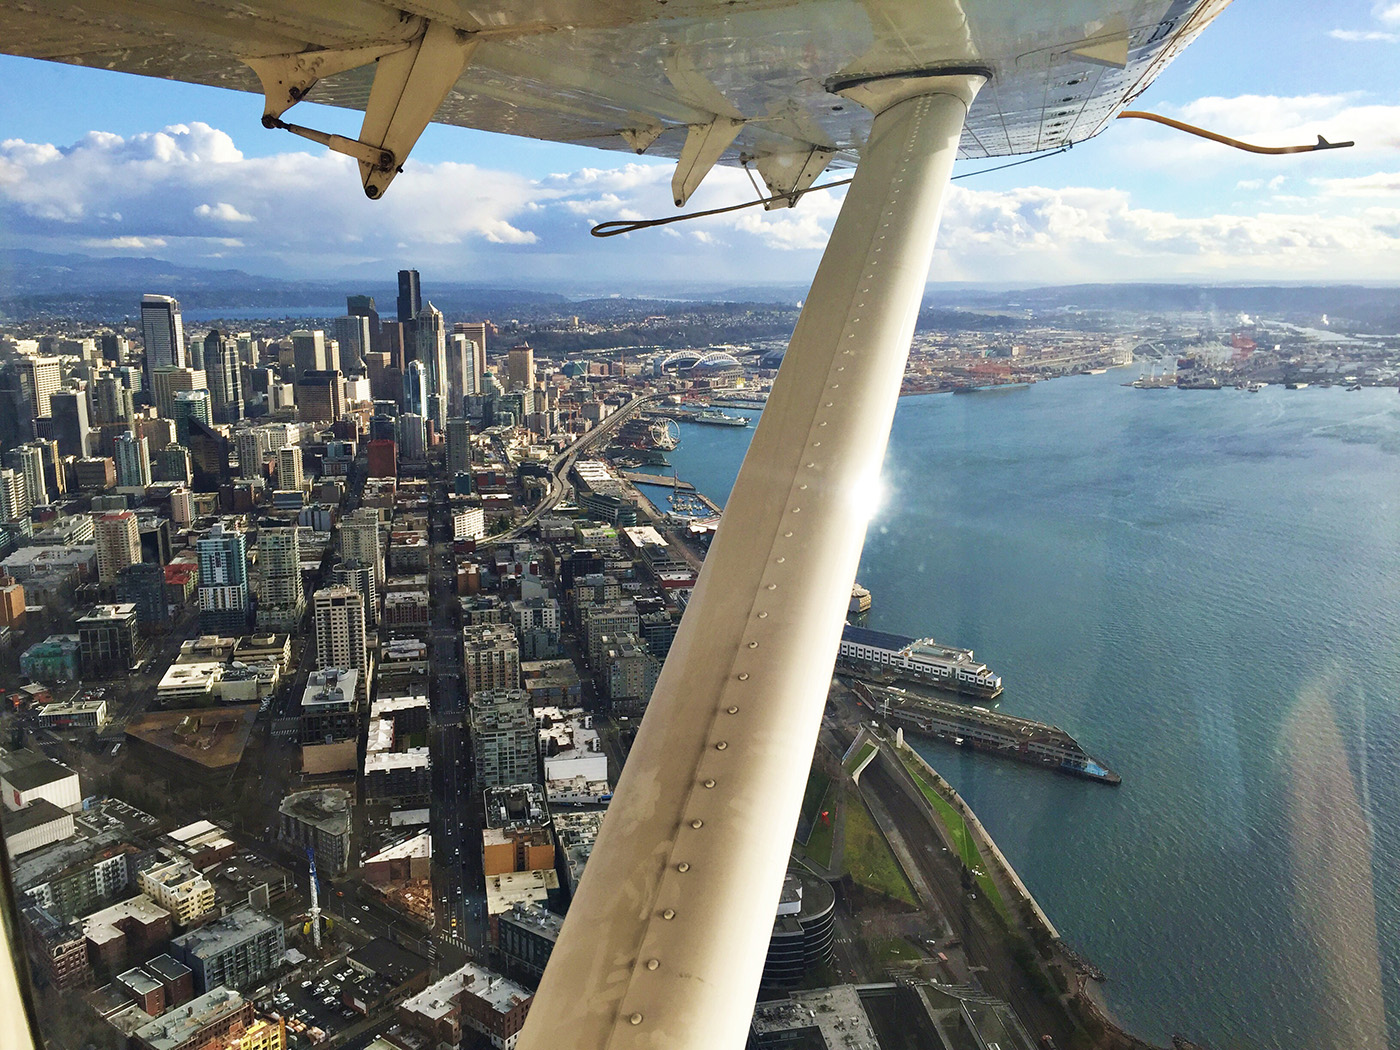 Seaplane view with Kenmore Air